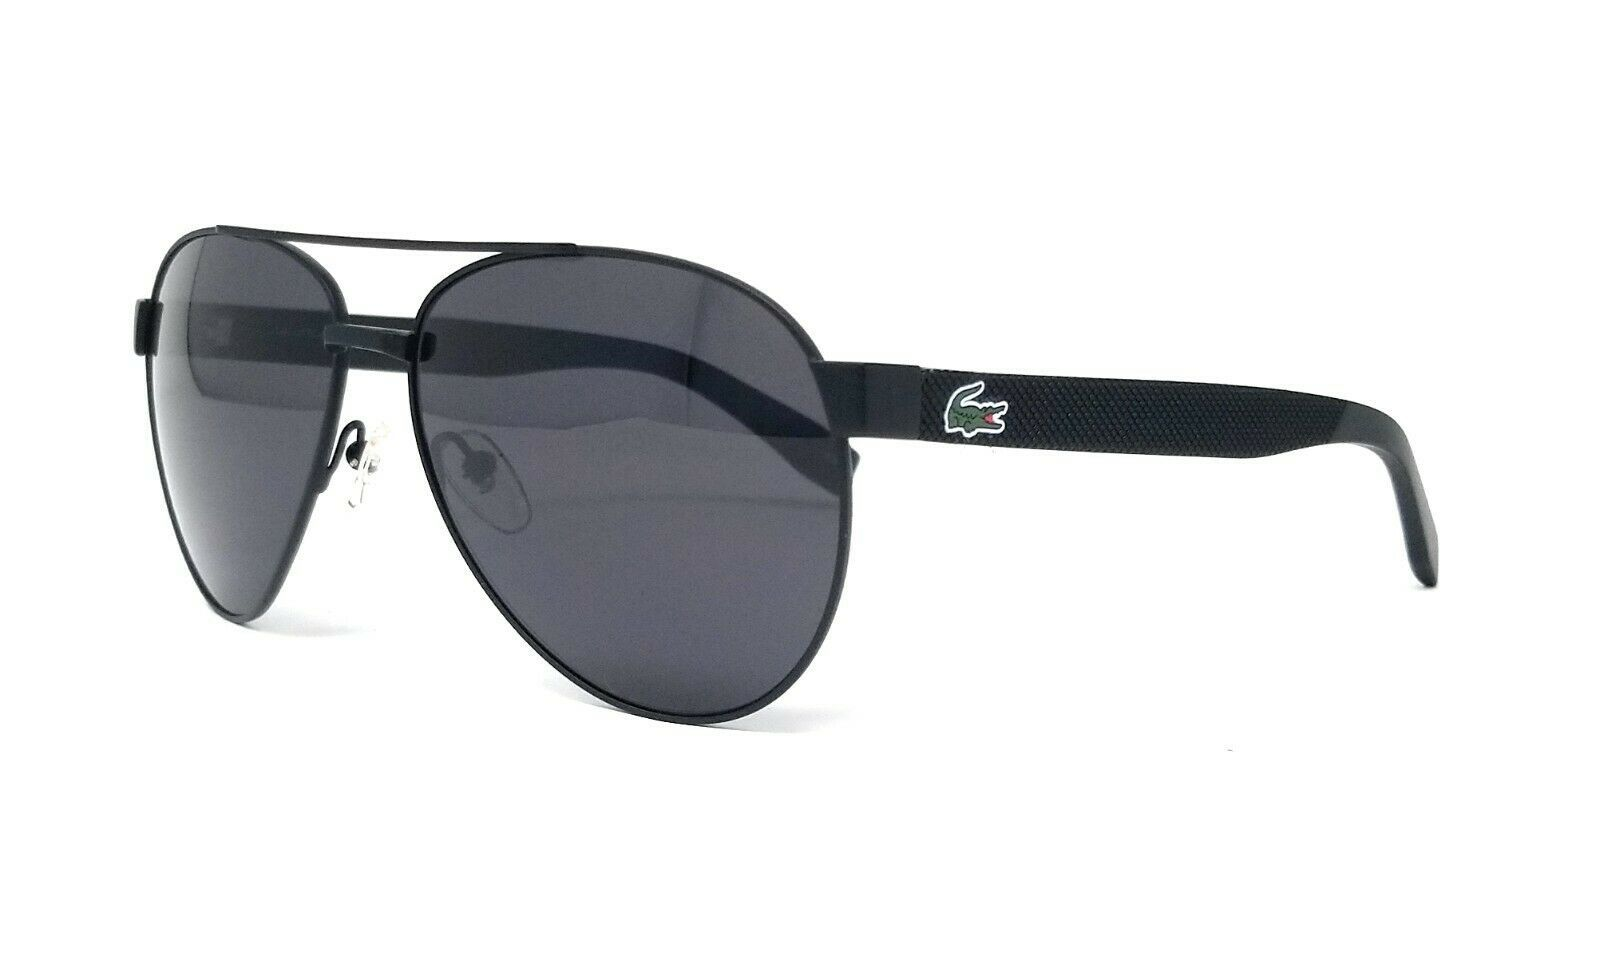 Primary image for LACOSTE Men's Pilot Sunglasses L185S 001 Matte Black Grey L185 60mm Large NEW